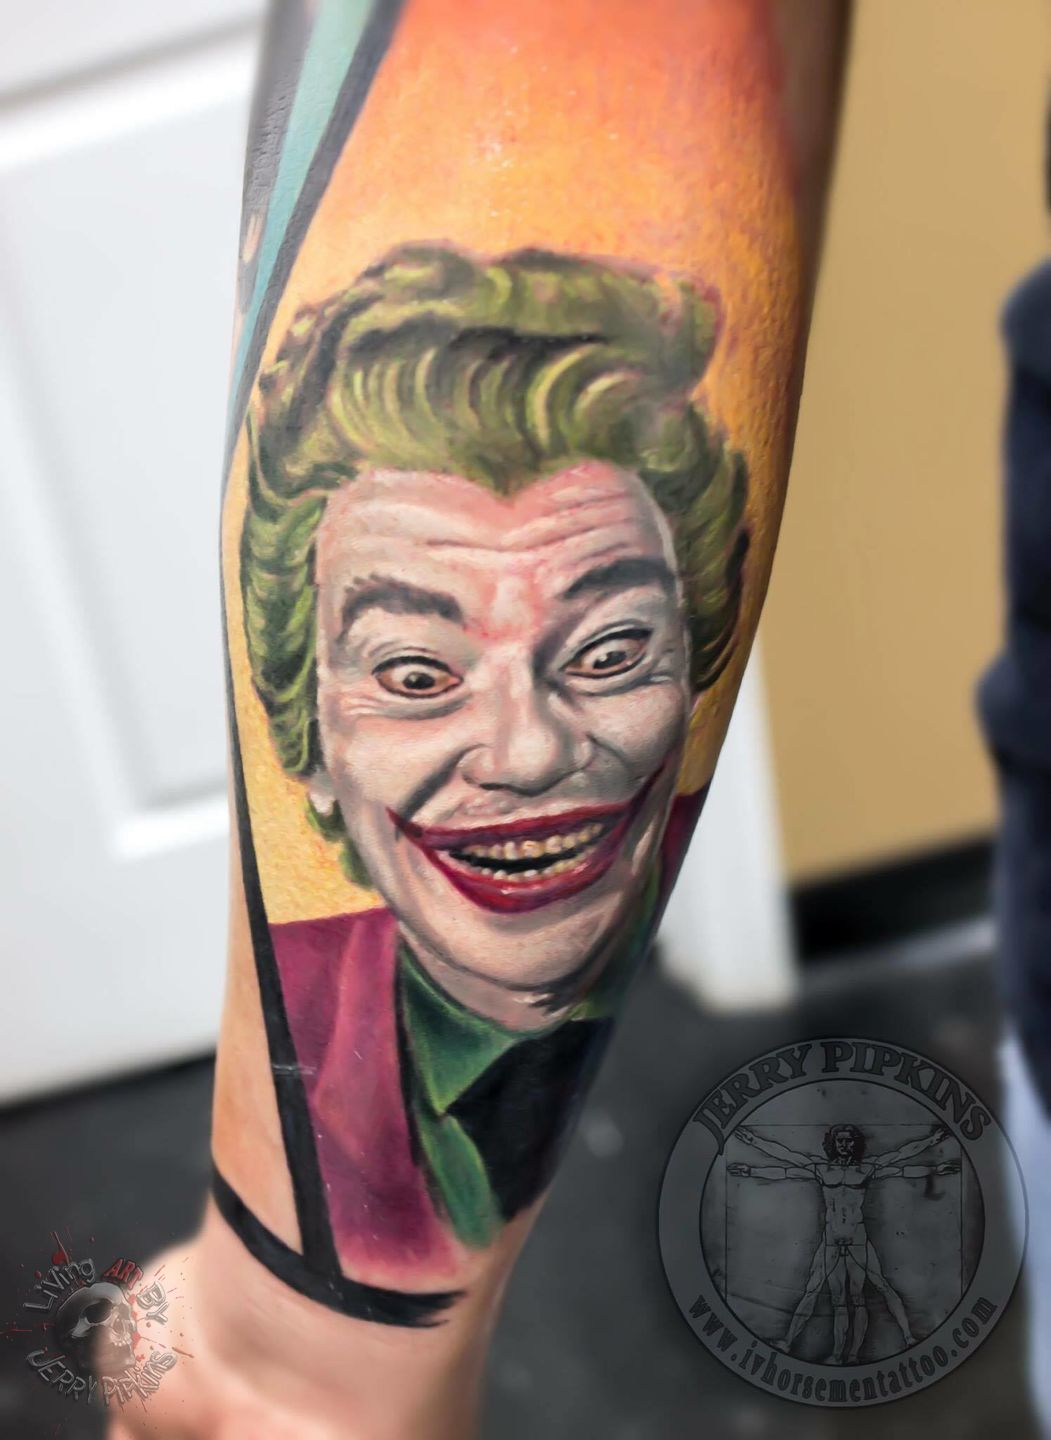 Jerry-pipkins-joker